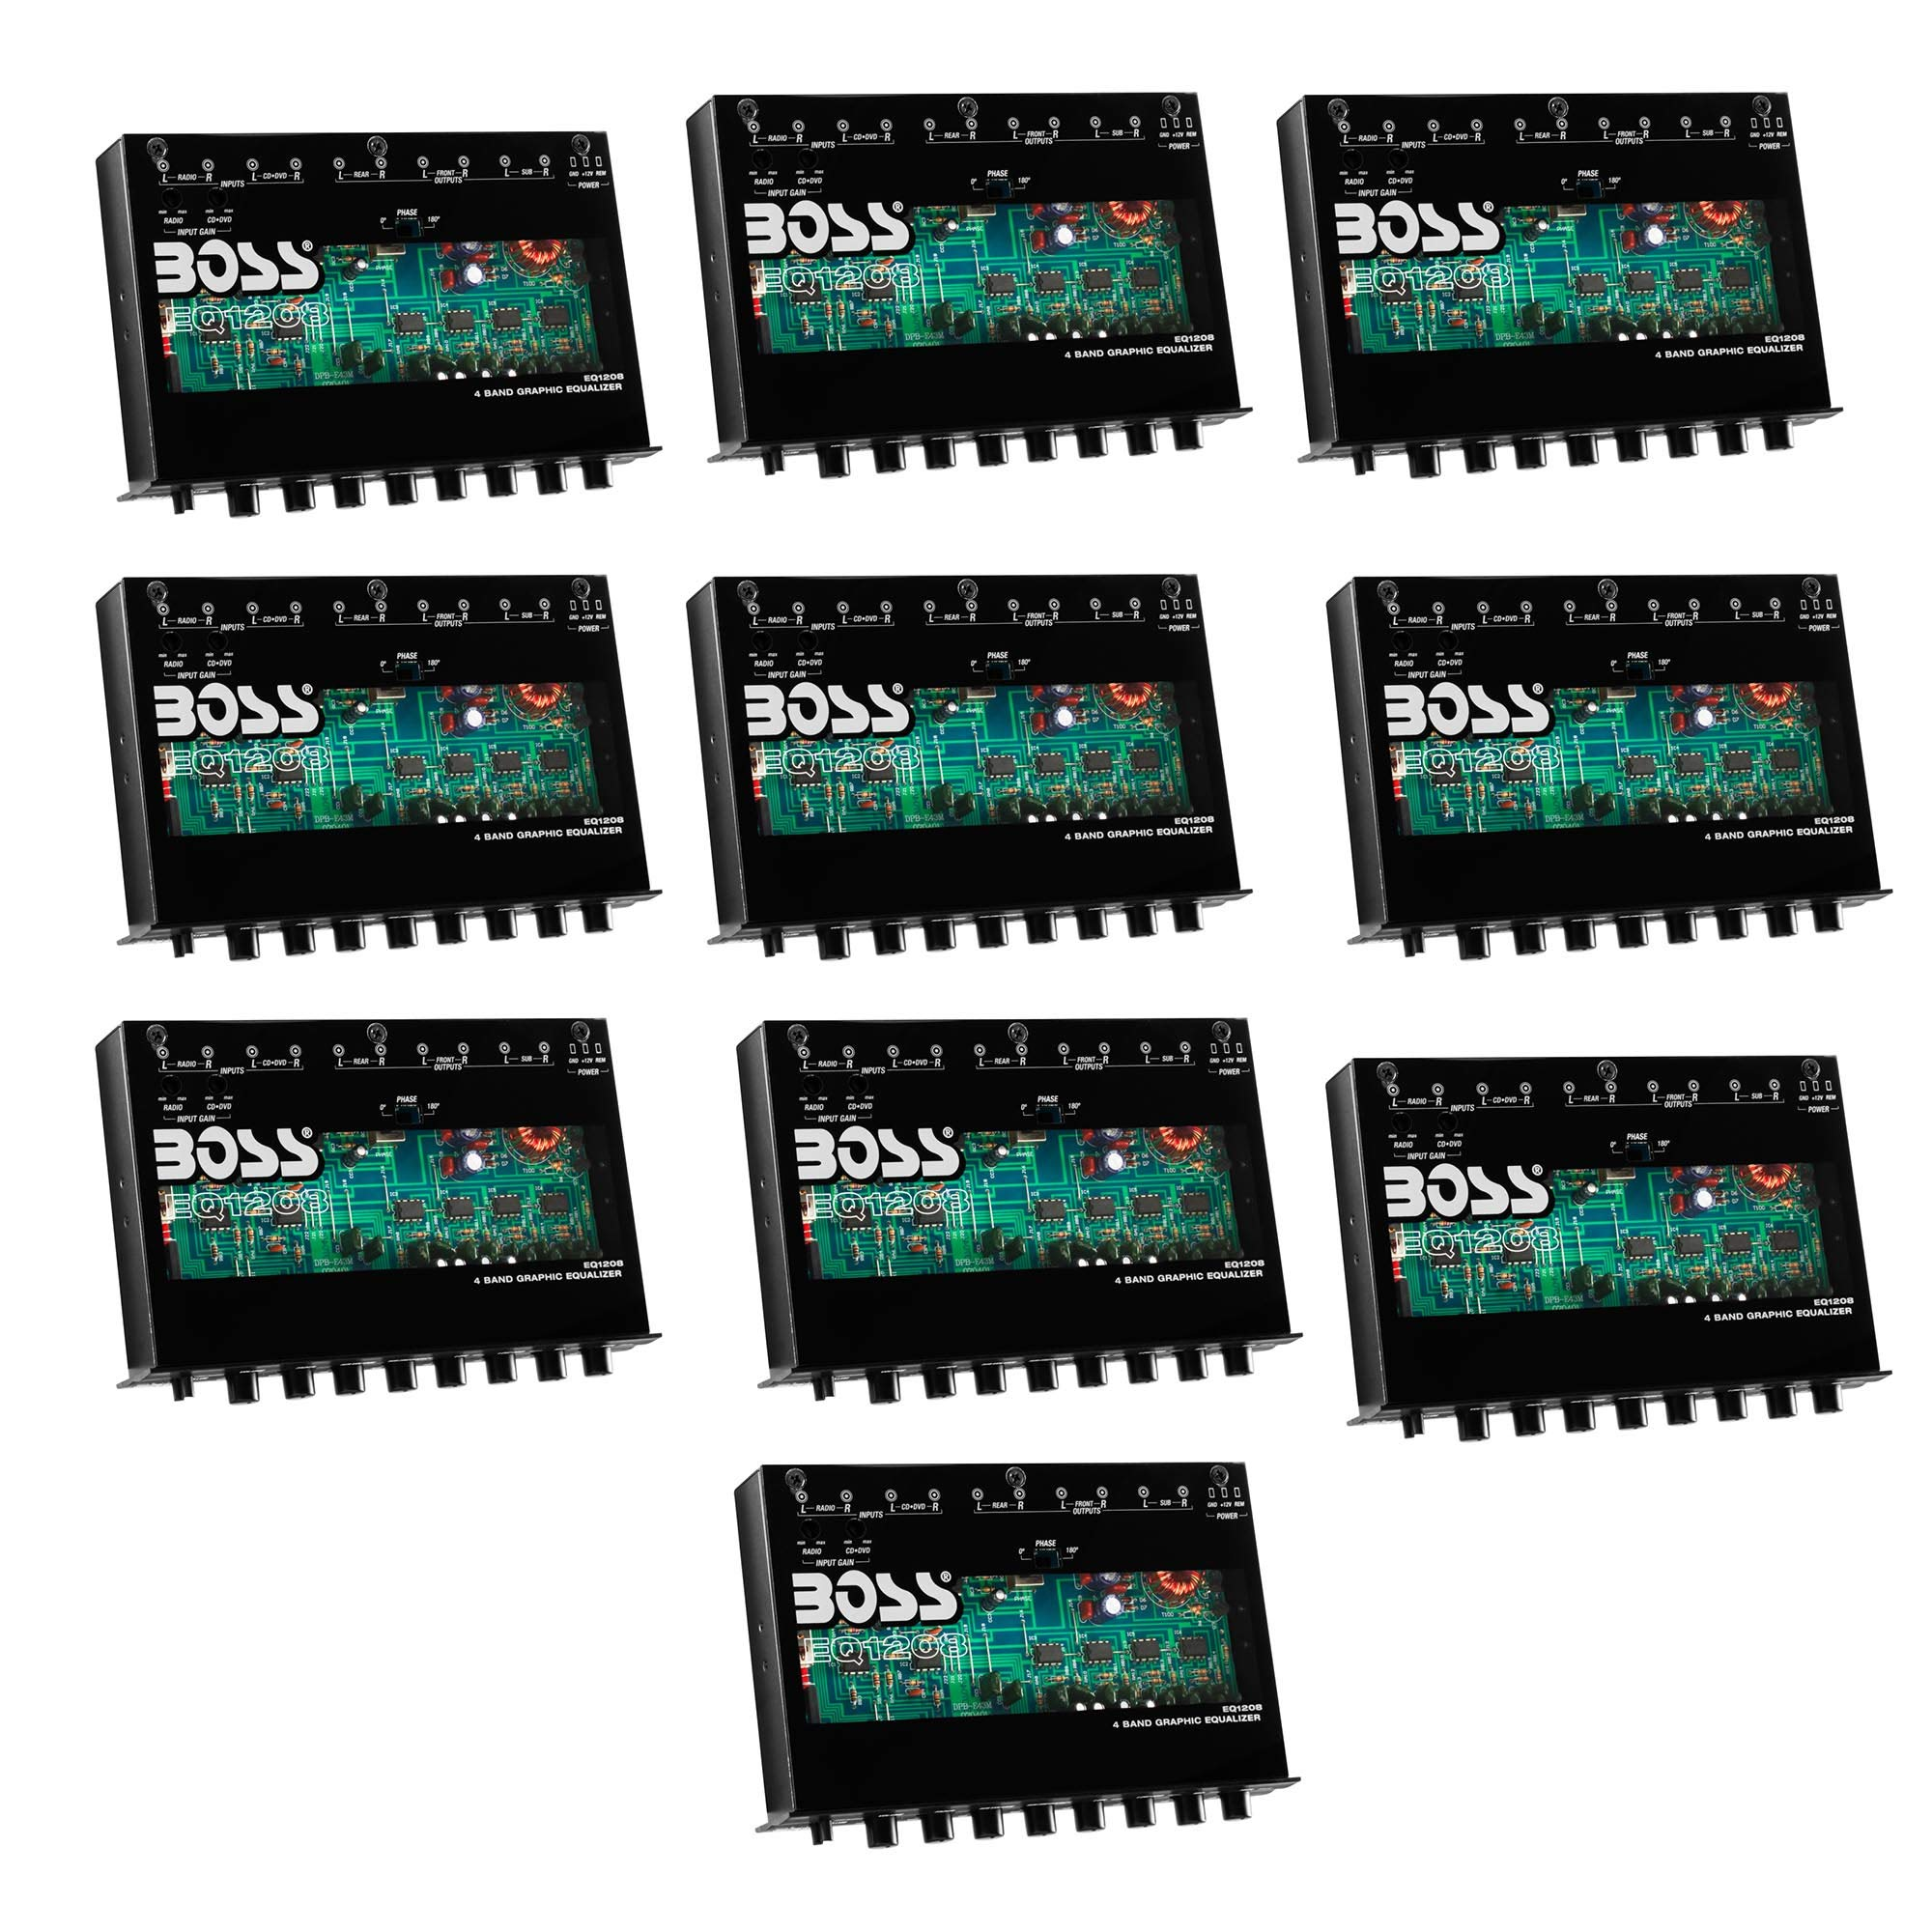 New BOSS EQ1208 4-Band Preamp Car Audio Equalizer w/Subwoofer Sub Output EQ Out (10 Pack)